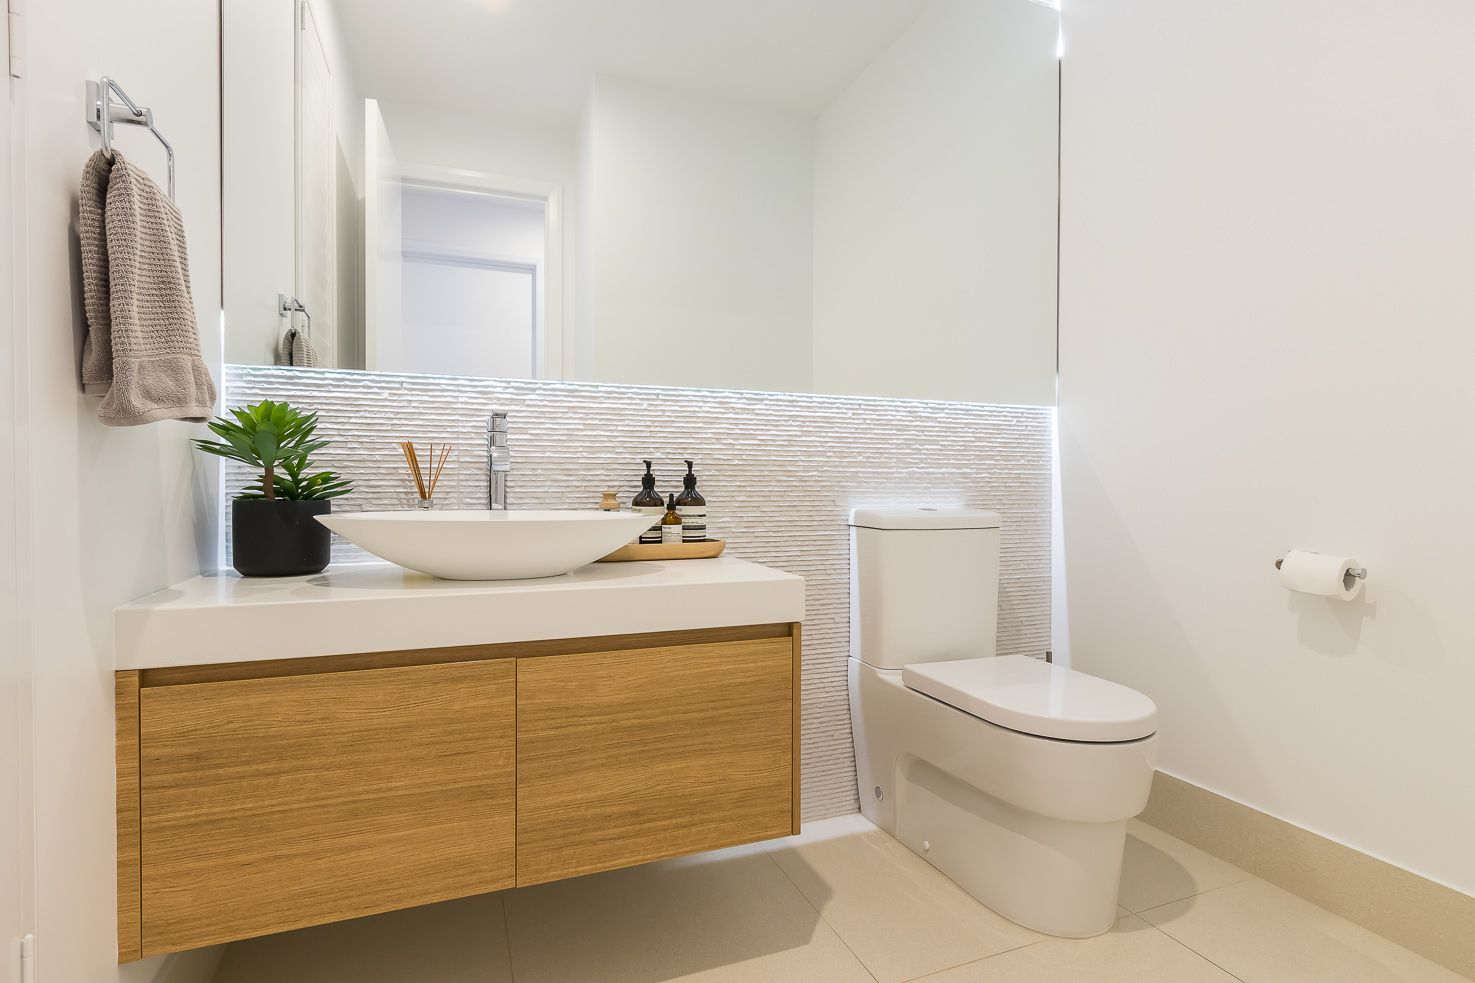 Brisbane Manly contemporary home view of the powder room with feature tiles